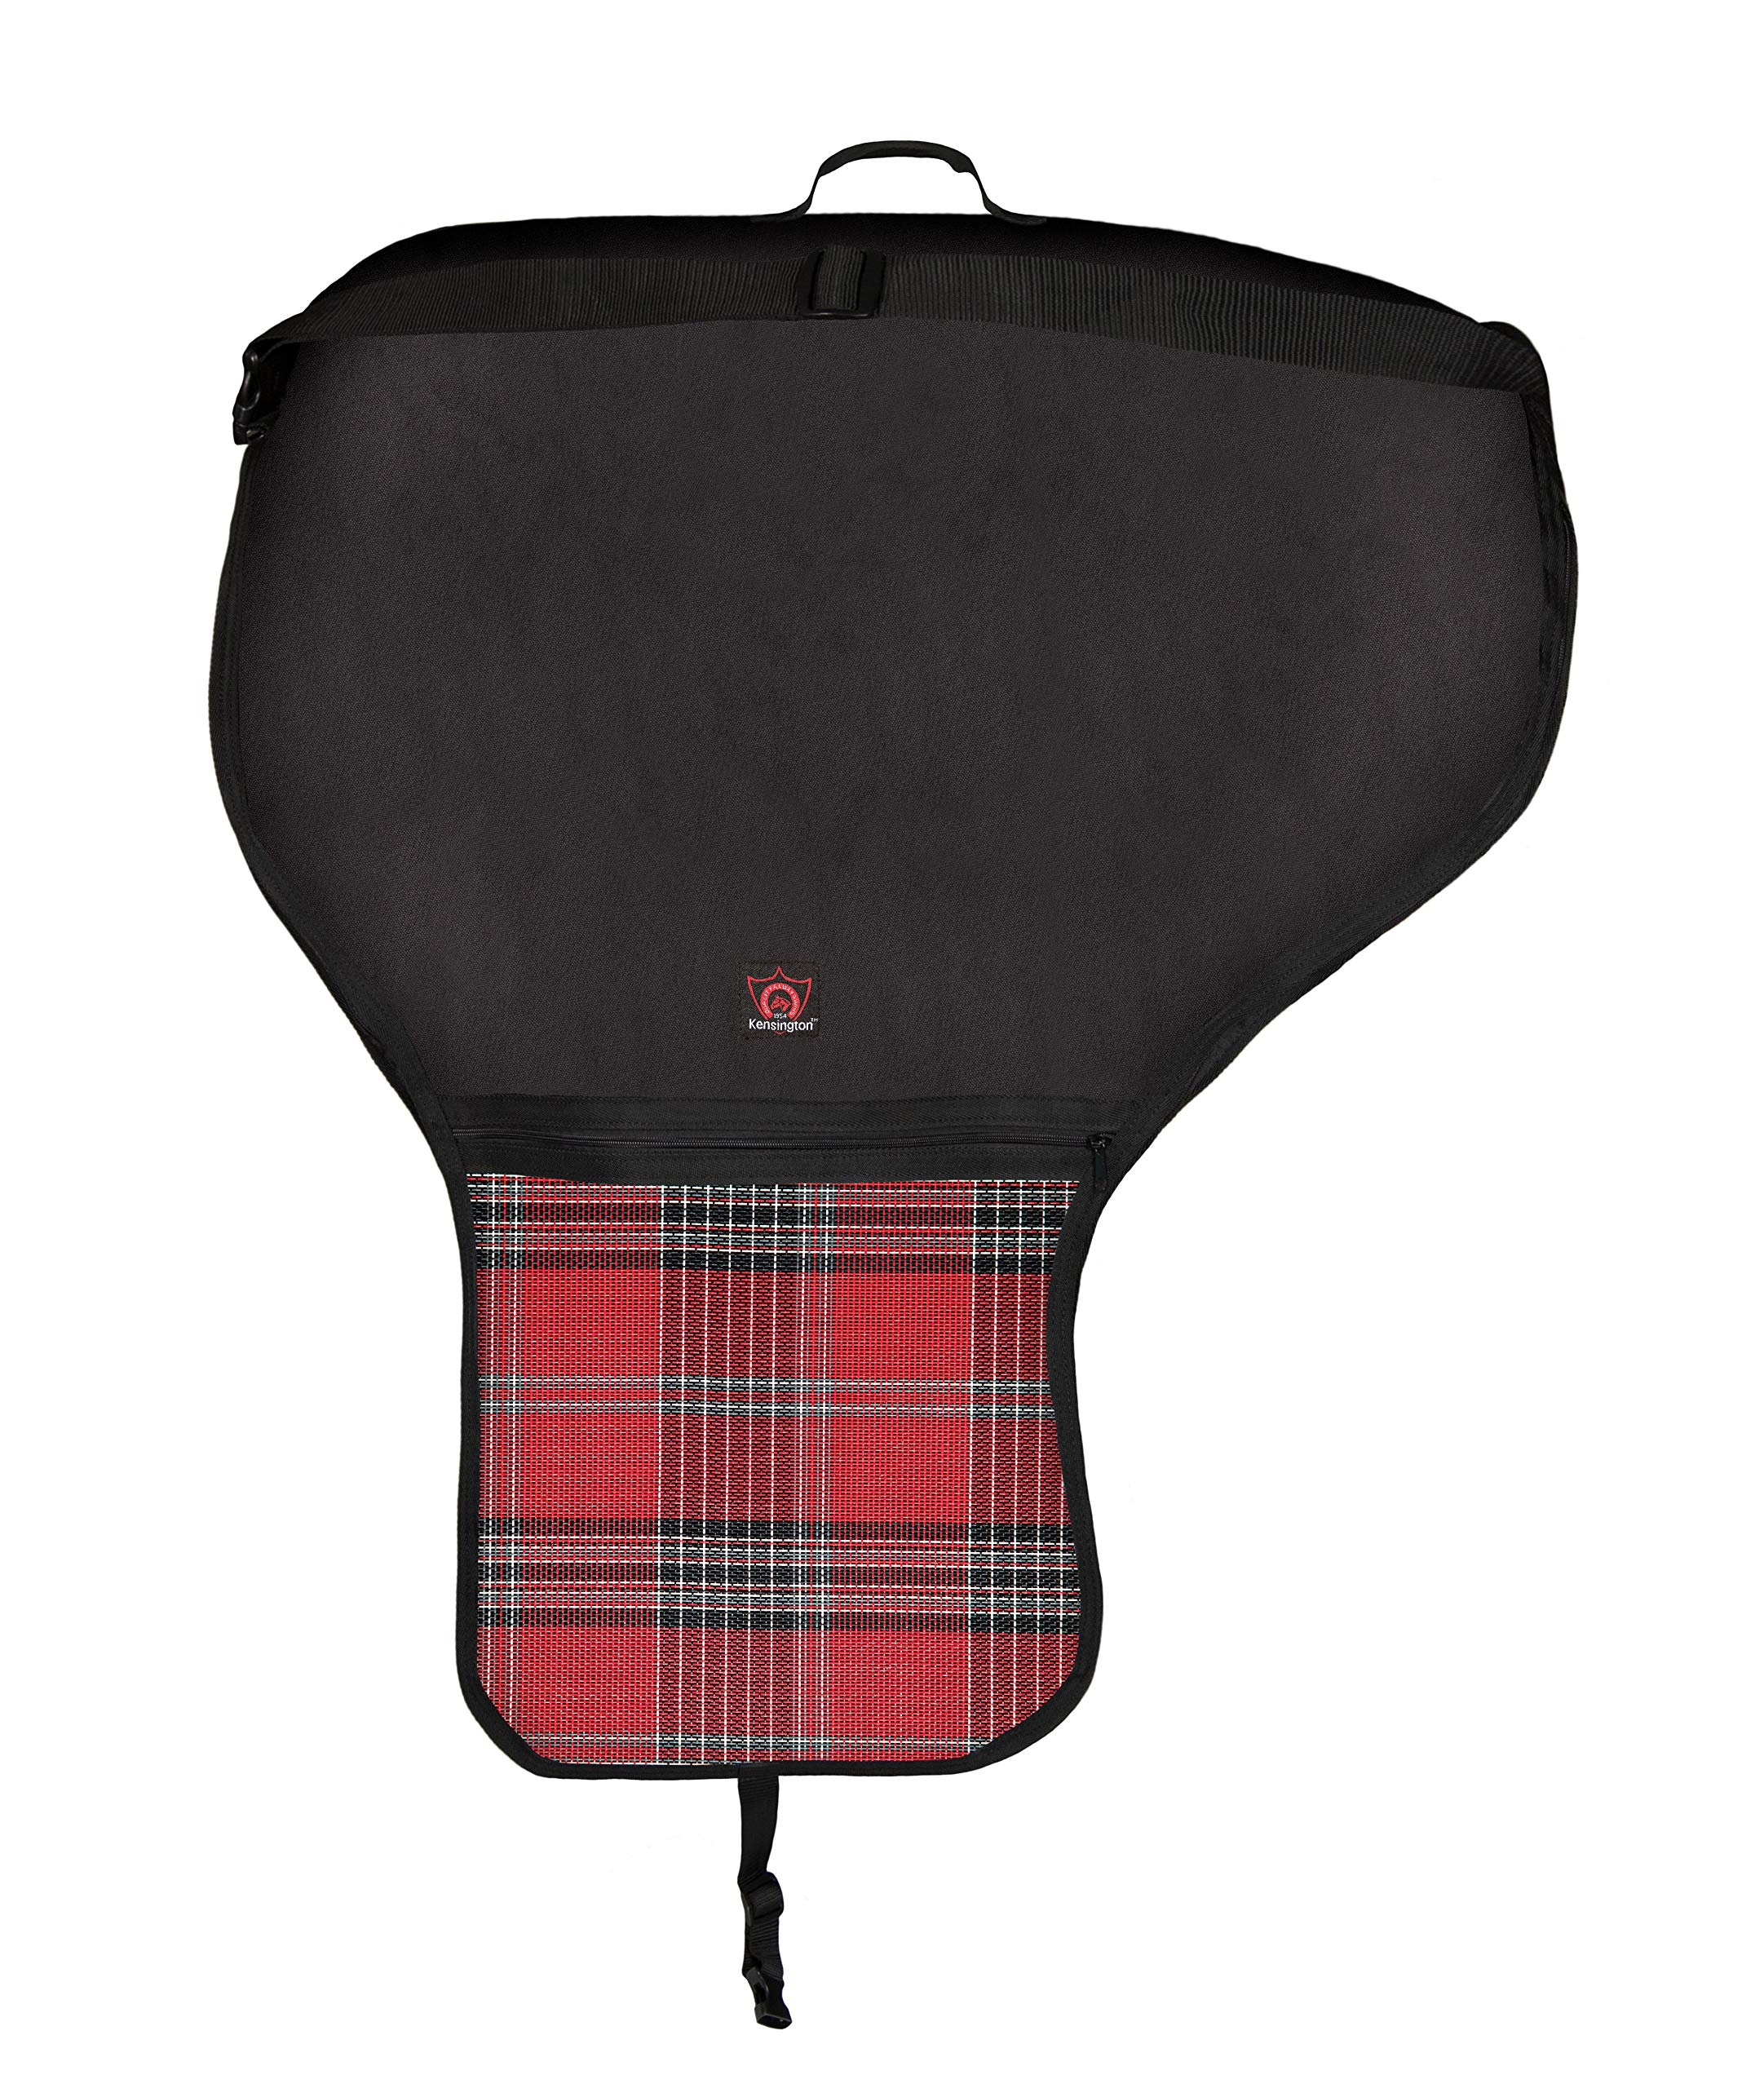 Kensington KPP All Around Western Saddle Cover, Deluxe Red Plaid, One Size